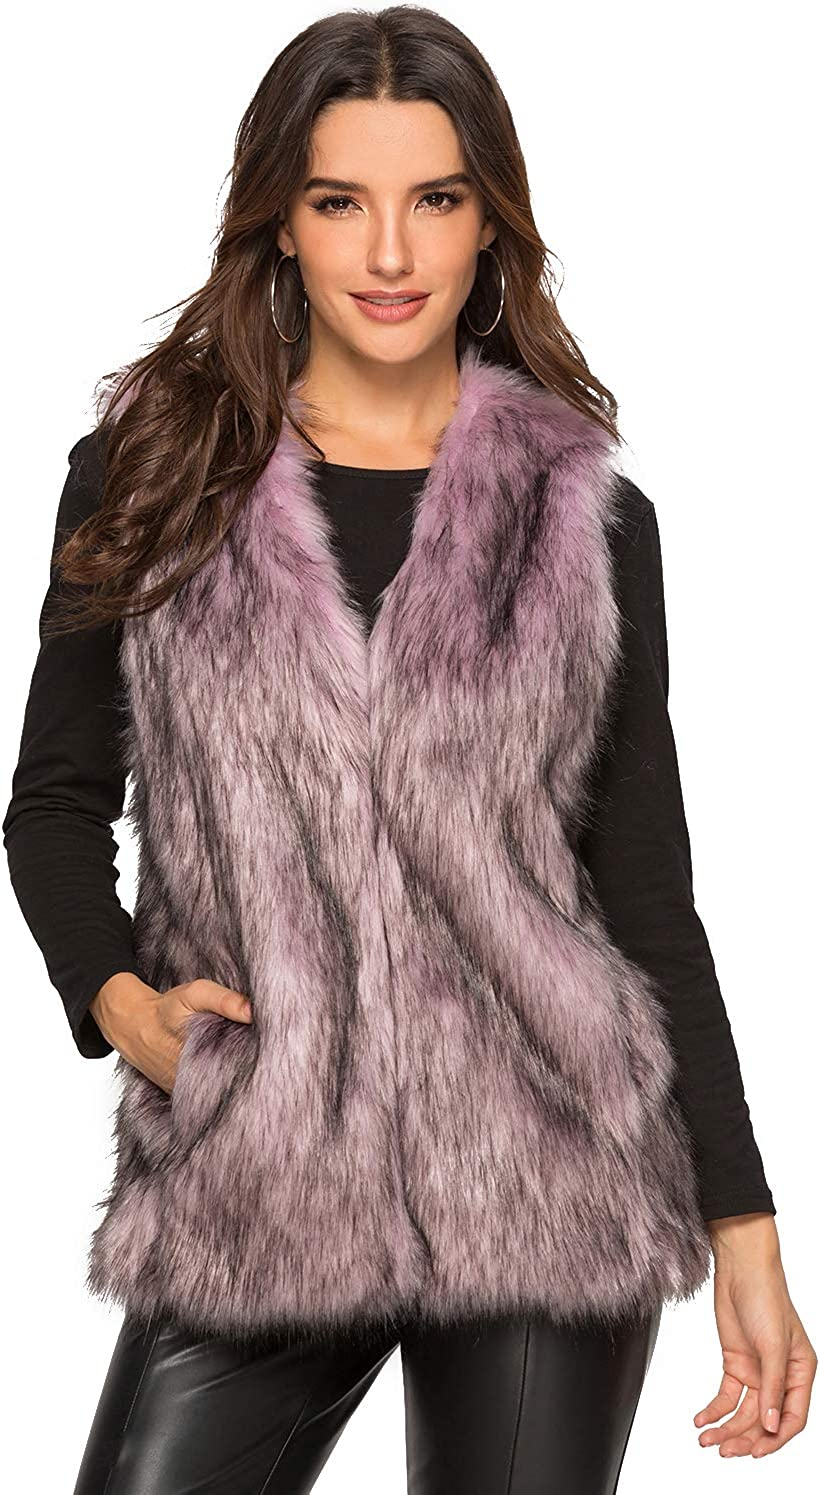 Escalier Women's Faux Fur Vest Waistcoat Sleeveless Jacket at  Women's Coats Shop